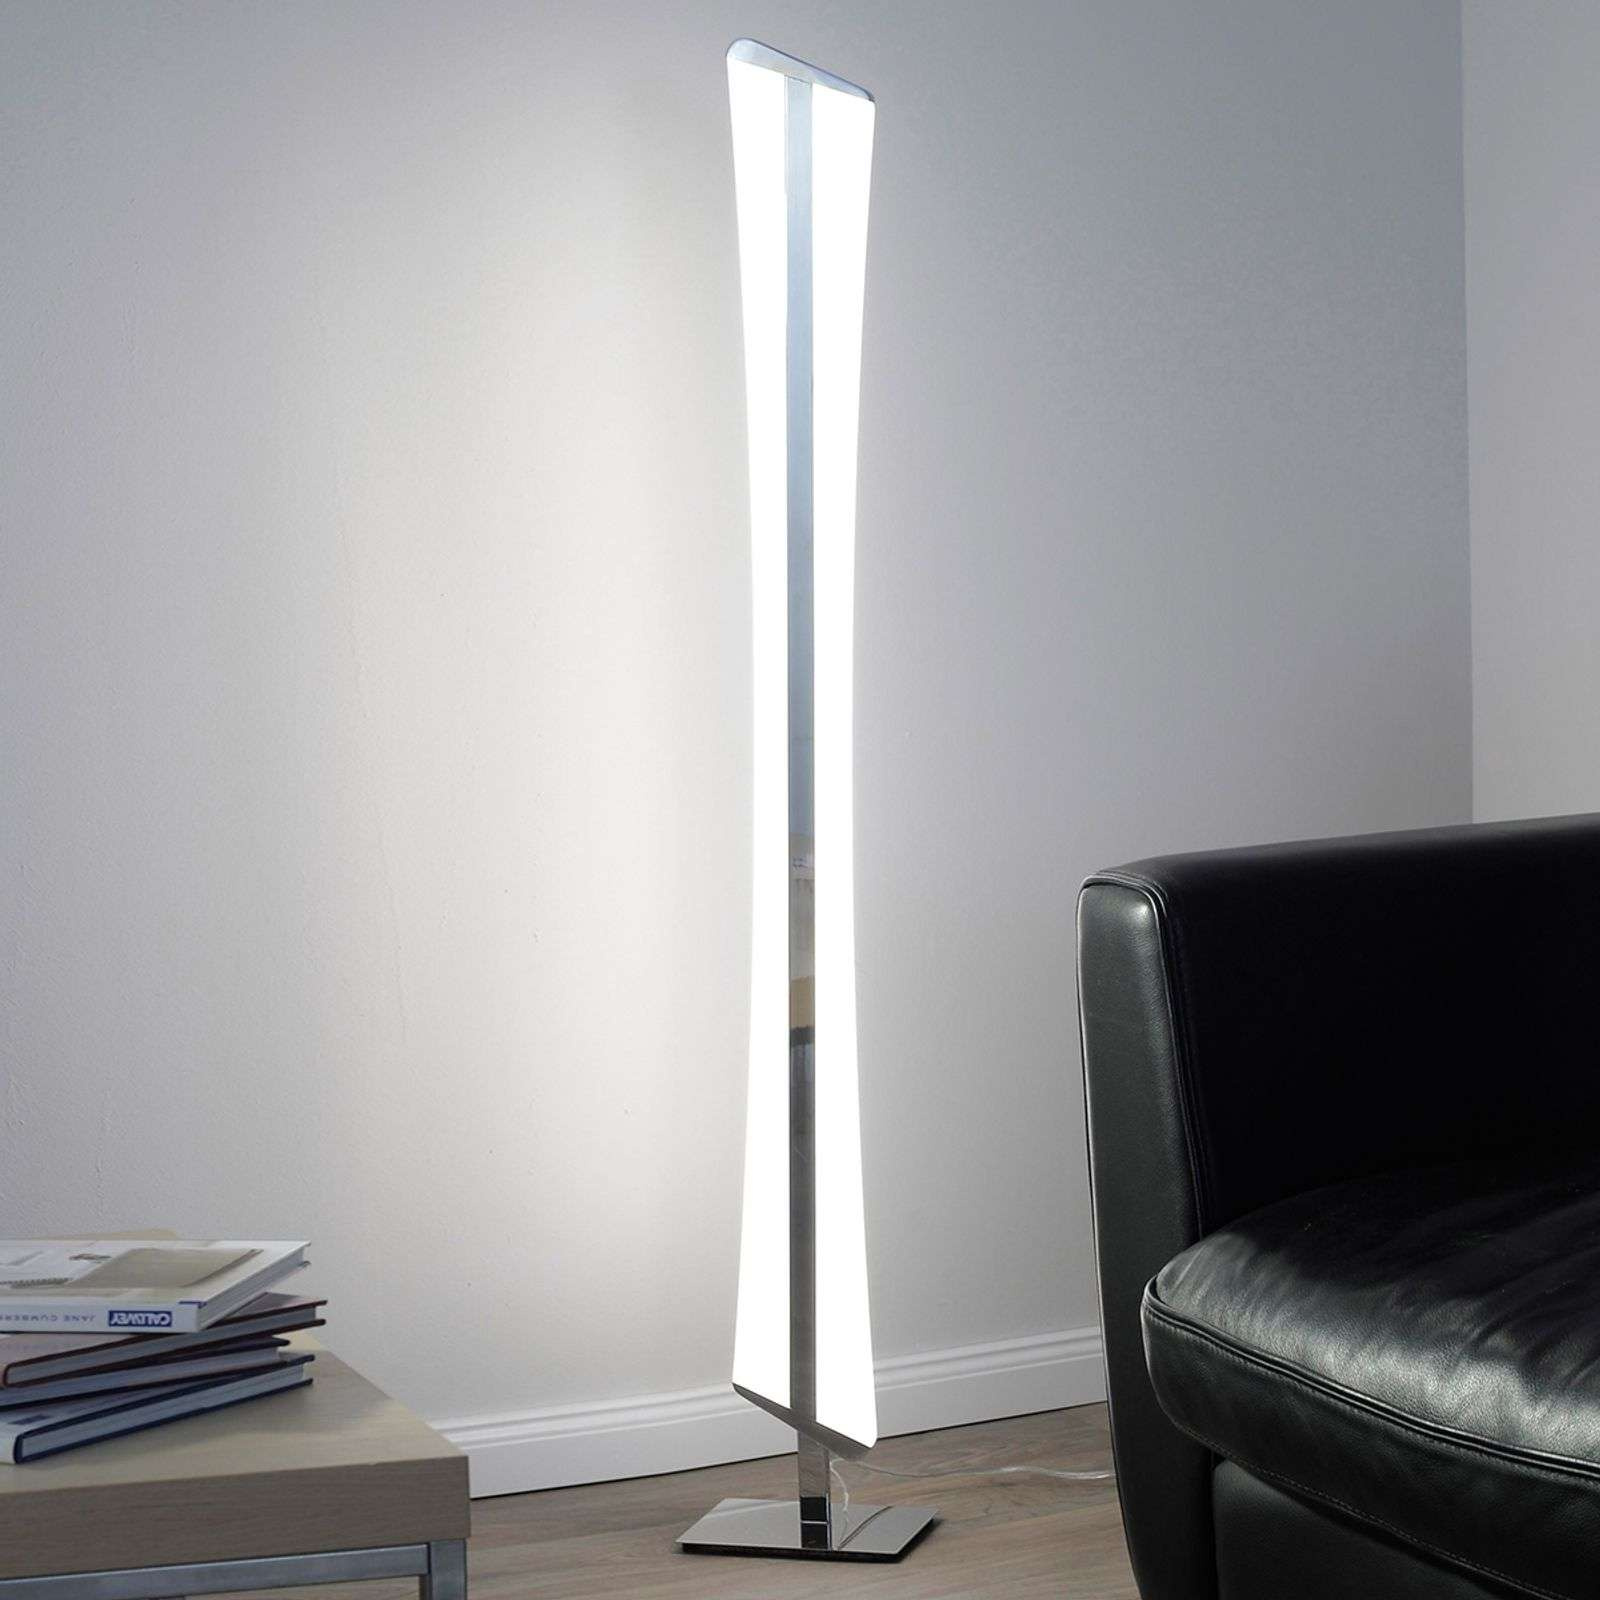 Lampadaire LED Riller contrôlable via application